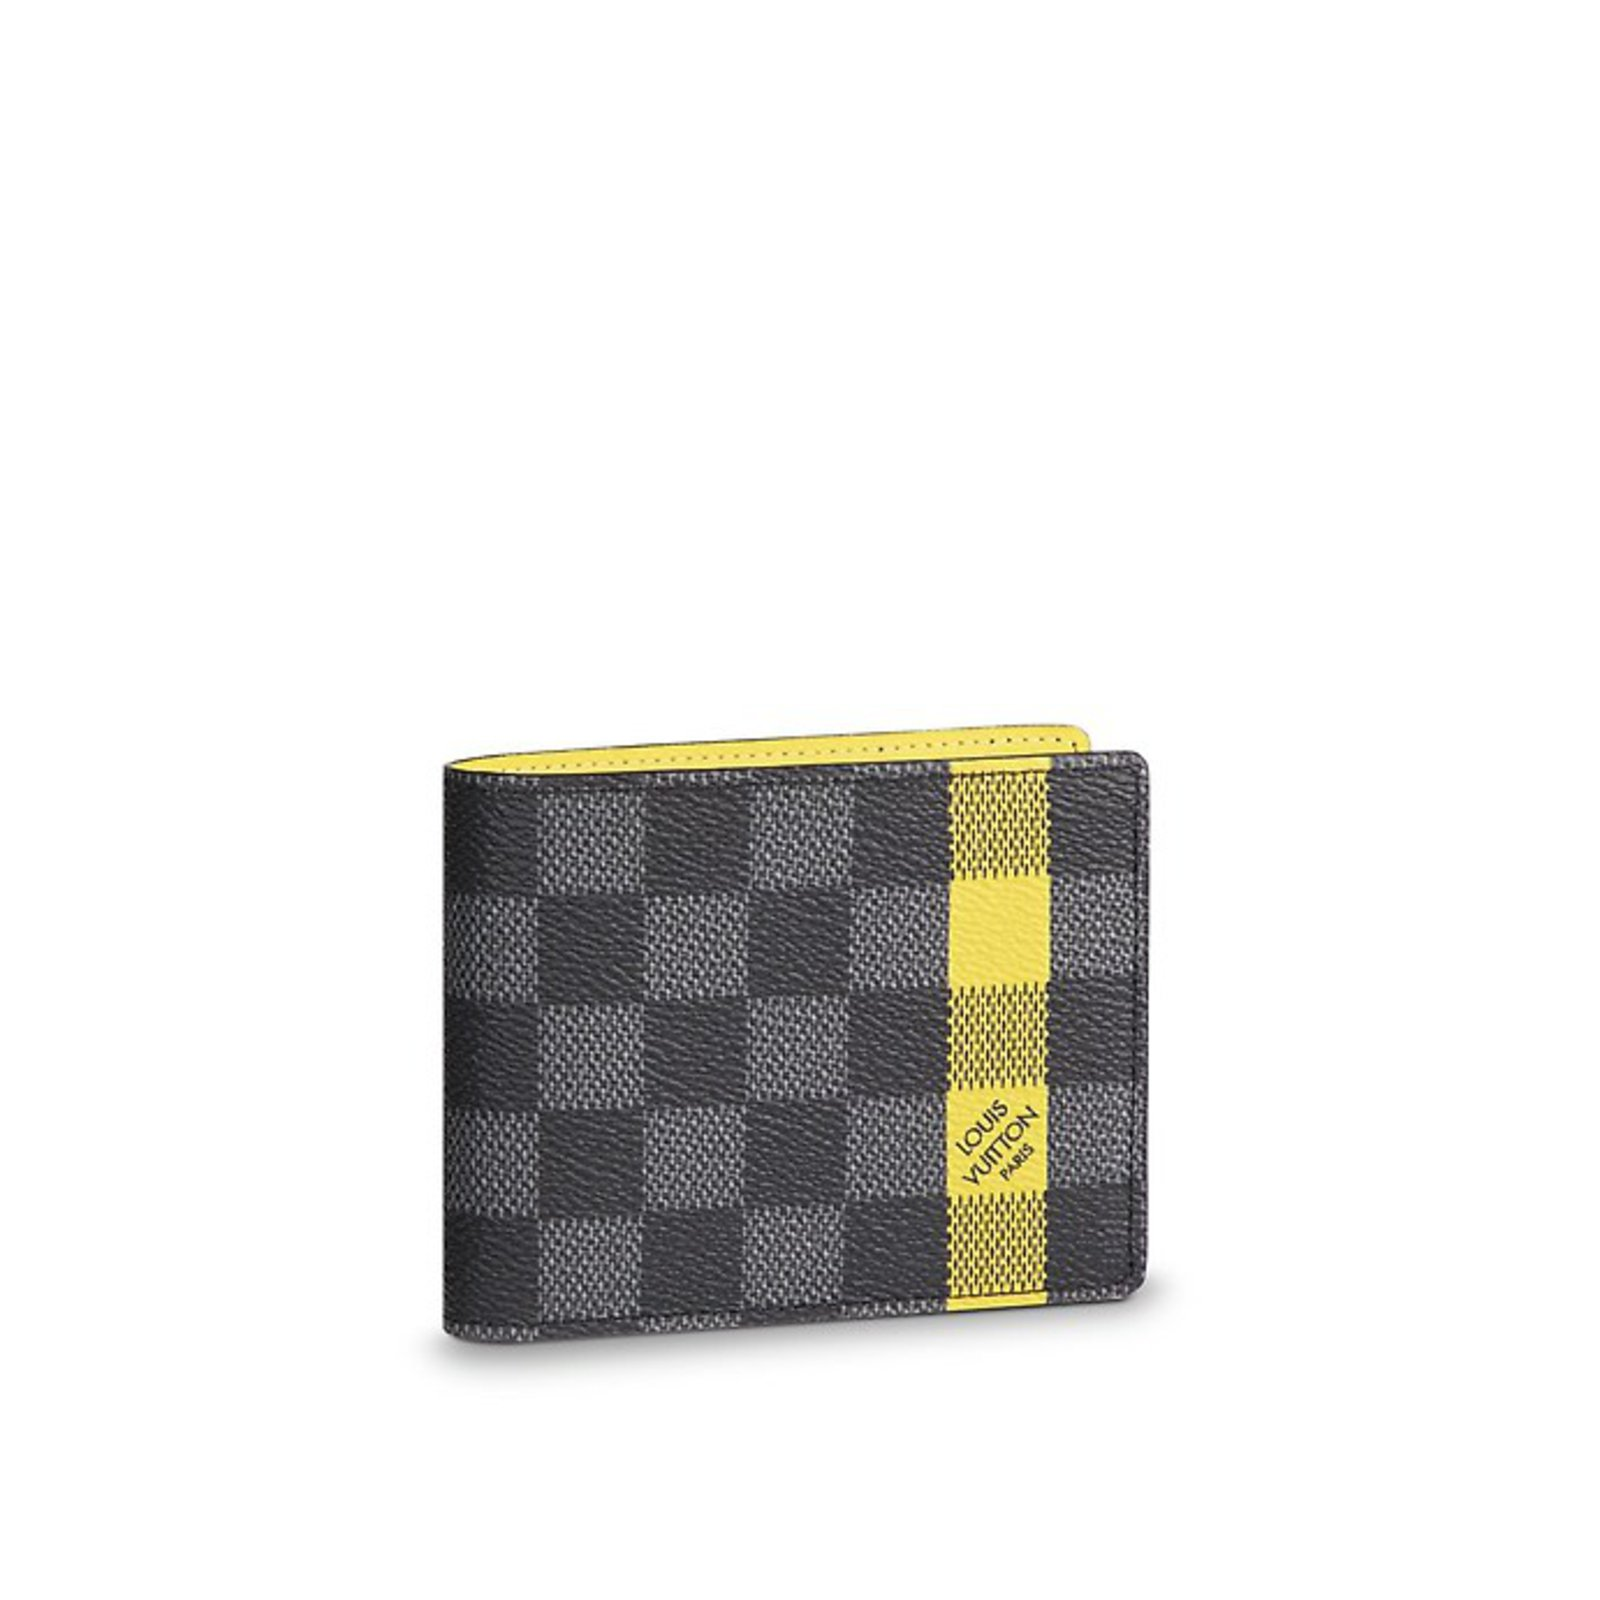 811f3357be3b Louis Vuitton Mens Wallet Prices - Best Photo Wallet Justiceforkenny.Org